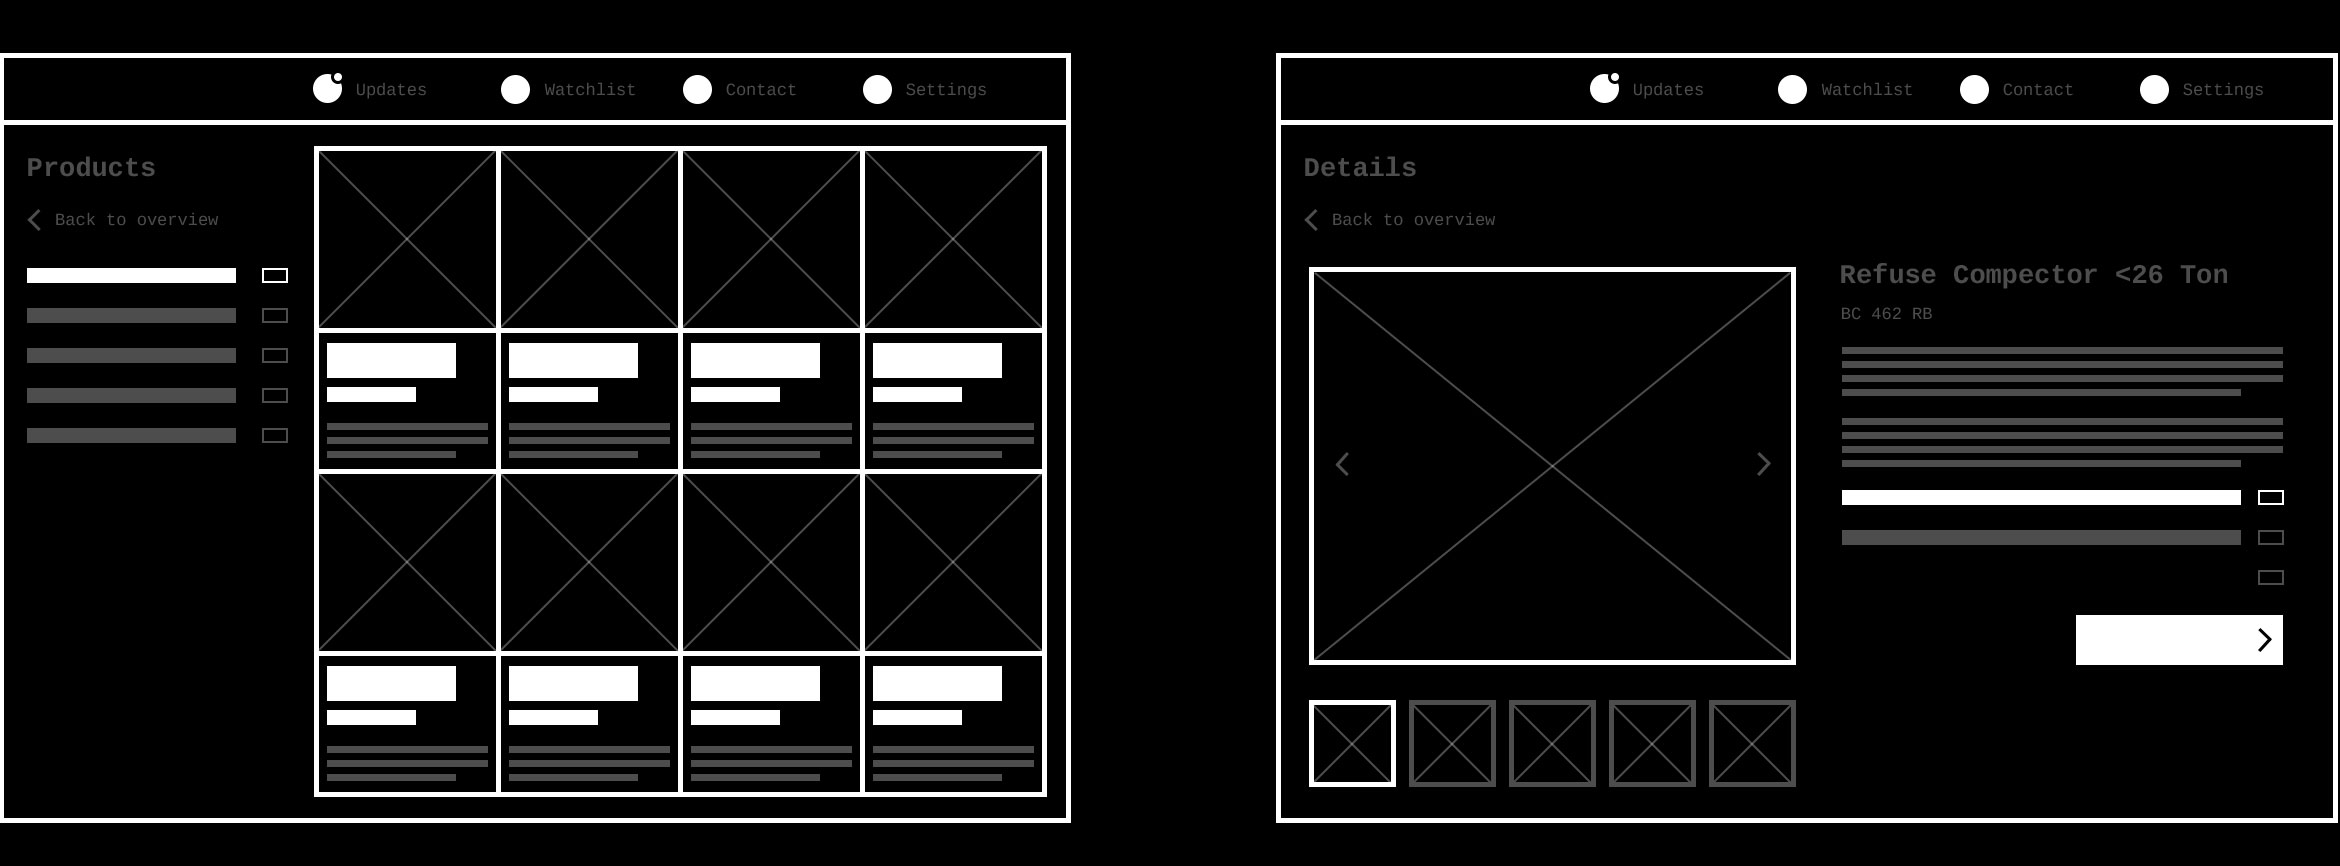 enes-uenal-bomag-bmobile-syzygy-wireframes